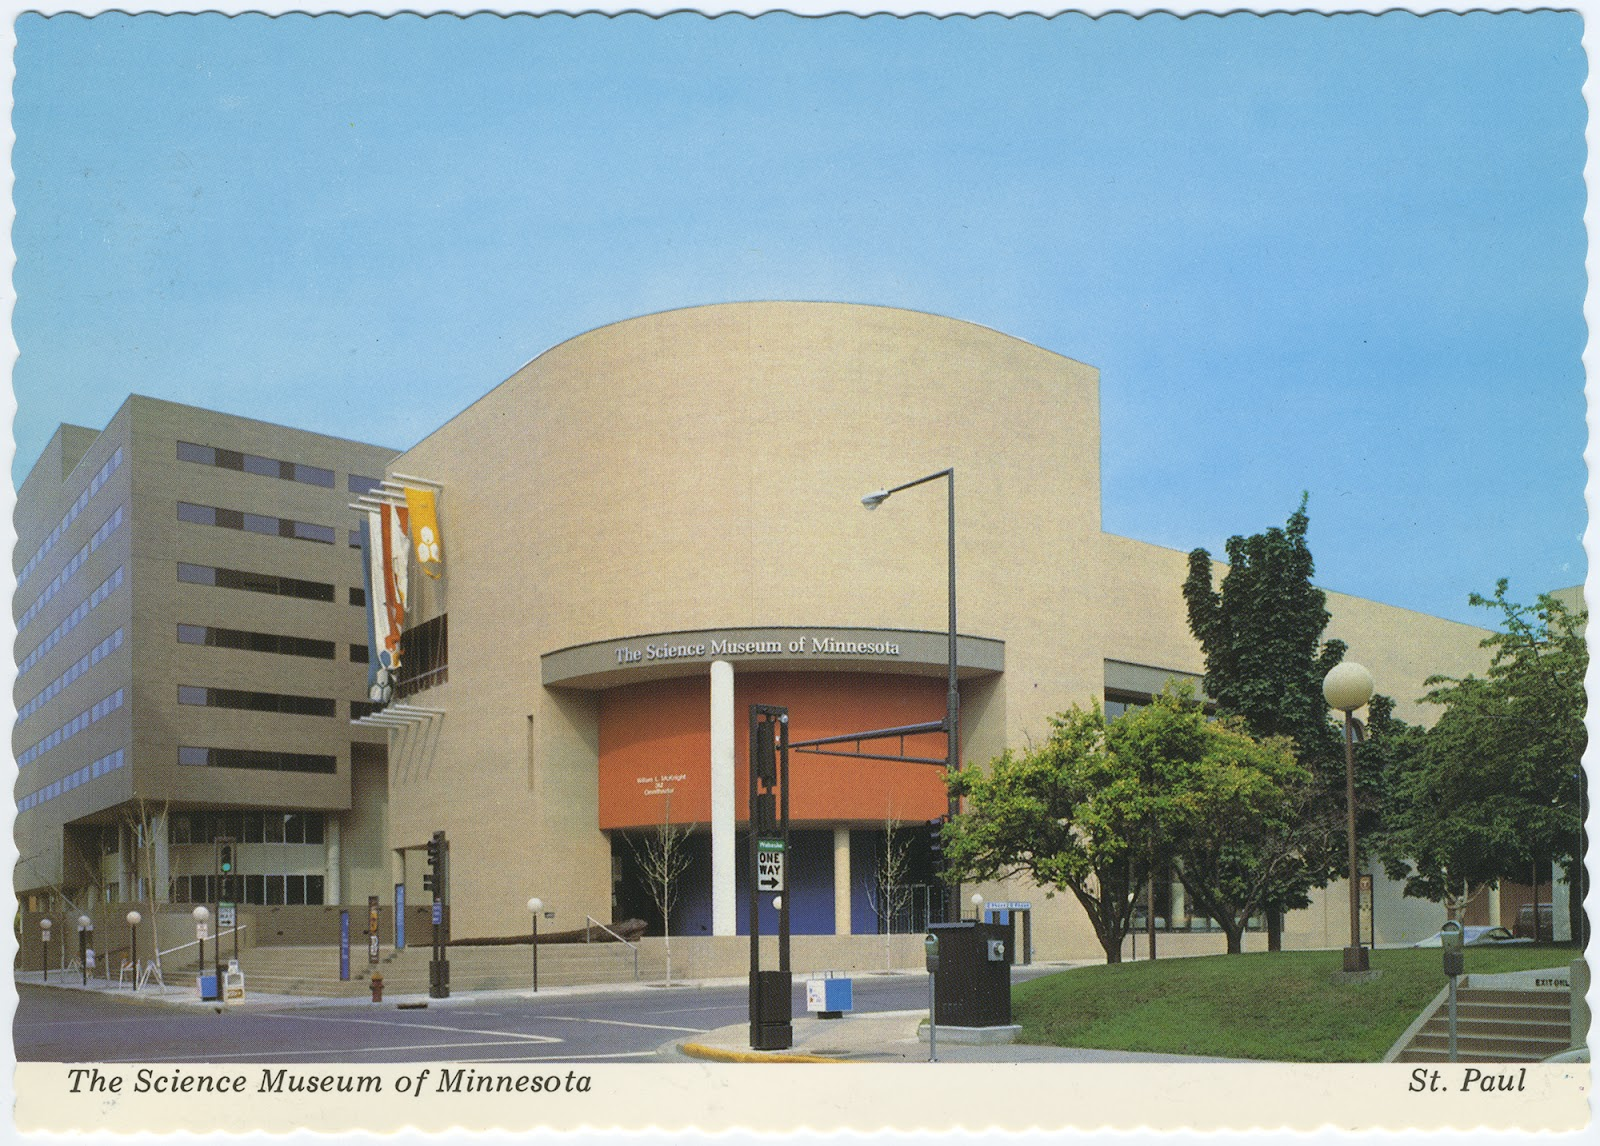 Science house at the science museum of minnesota - Postcard Of The Science Museum Of Minnesota St Paul Minnesota Circa 1990